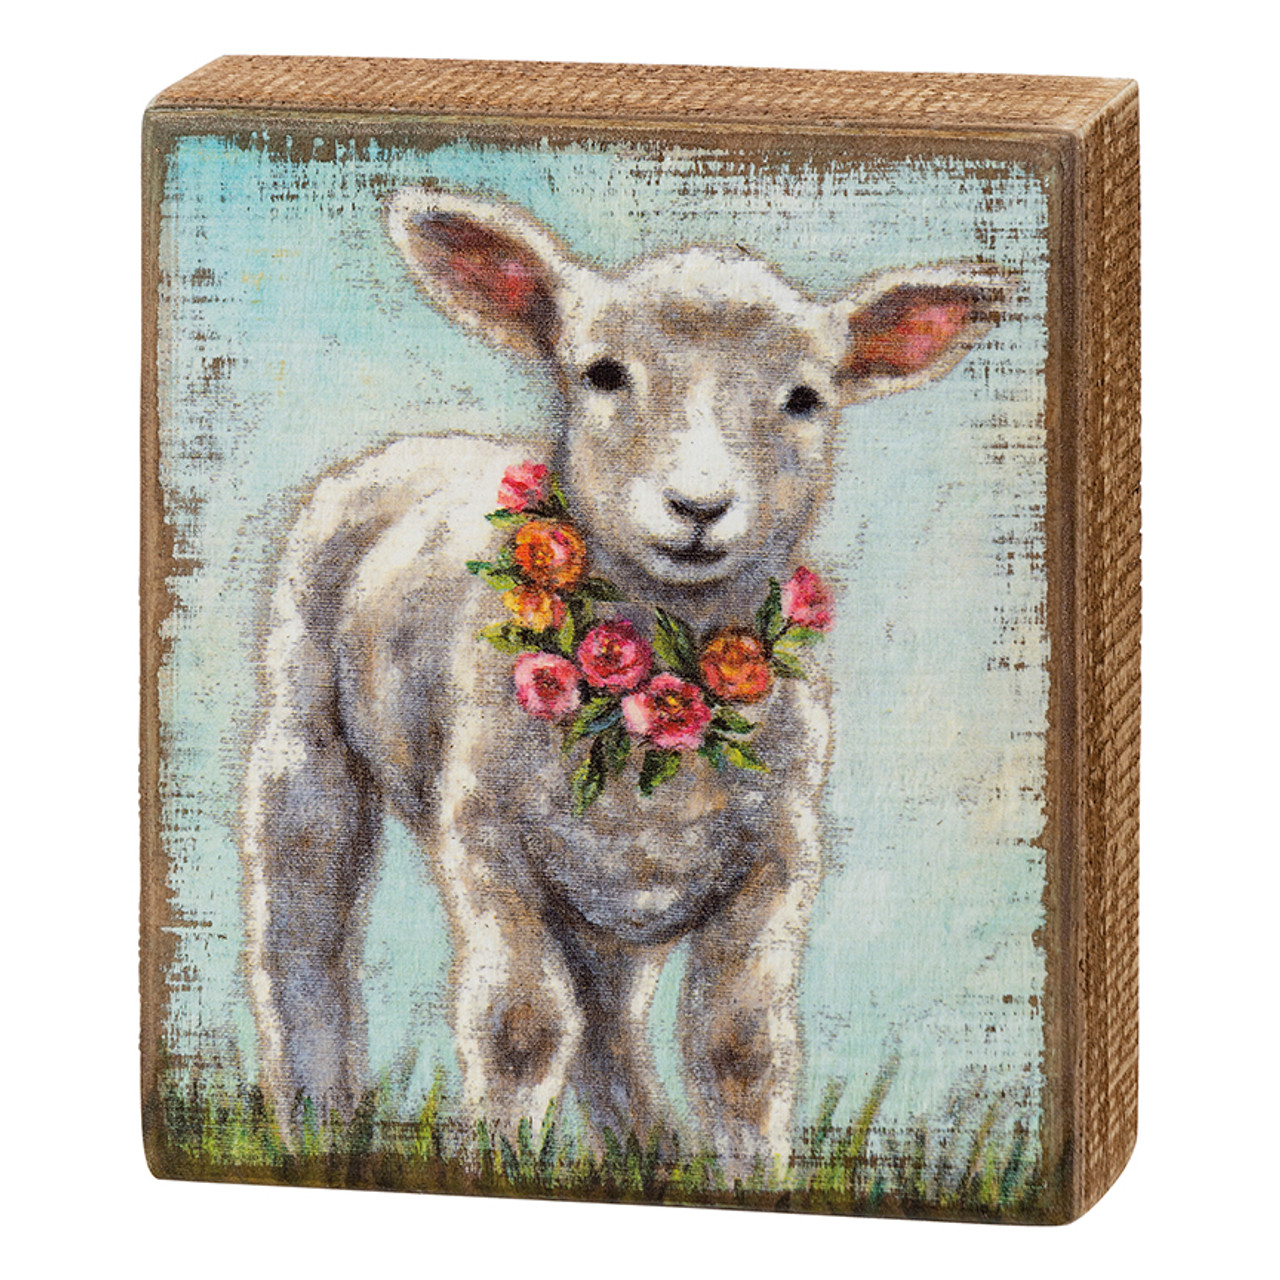 Baby Lamb in a Springtime Floral Wreath Box Sign by Michelle Kixmiller